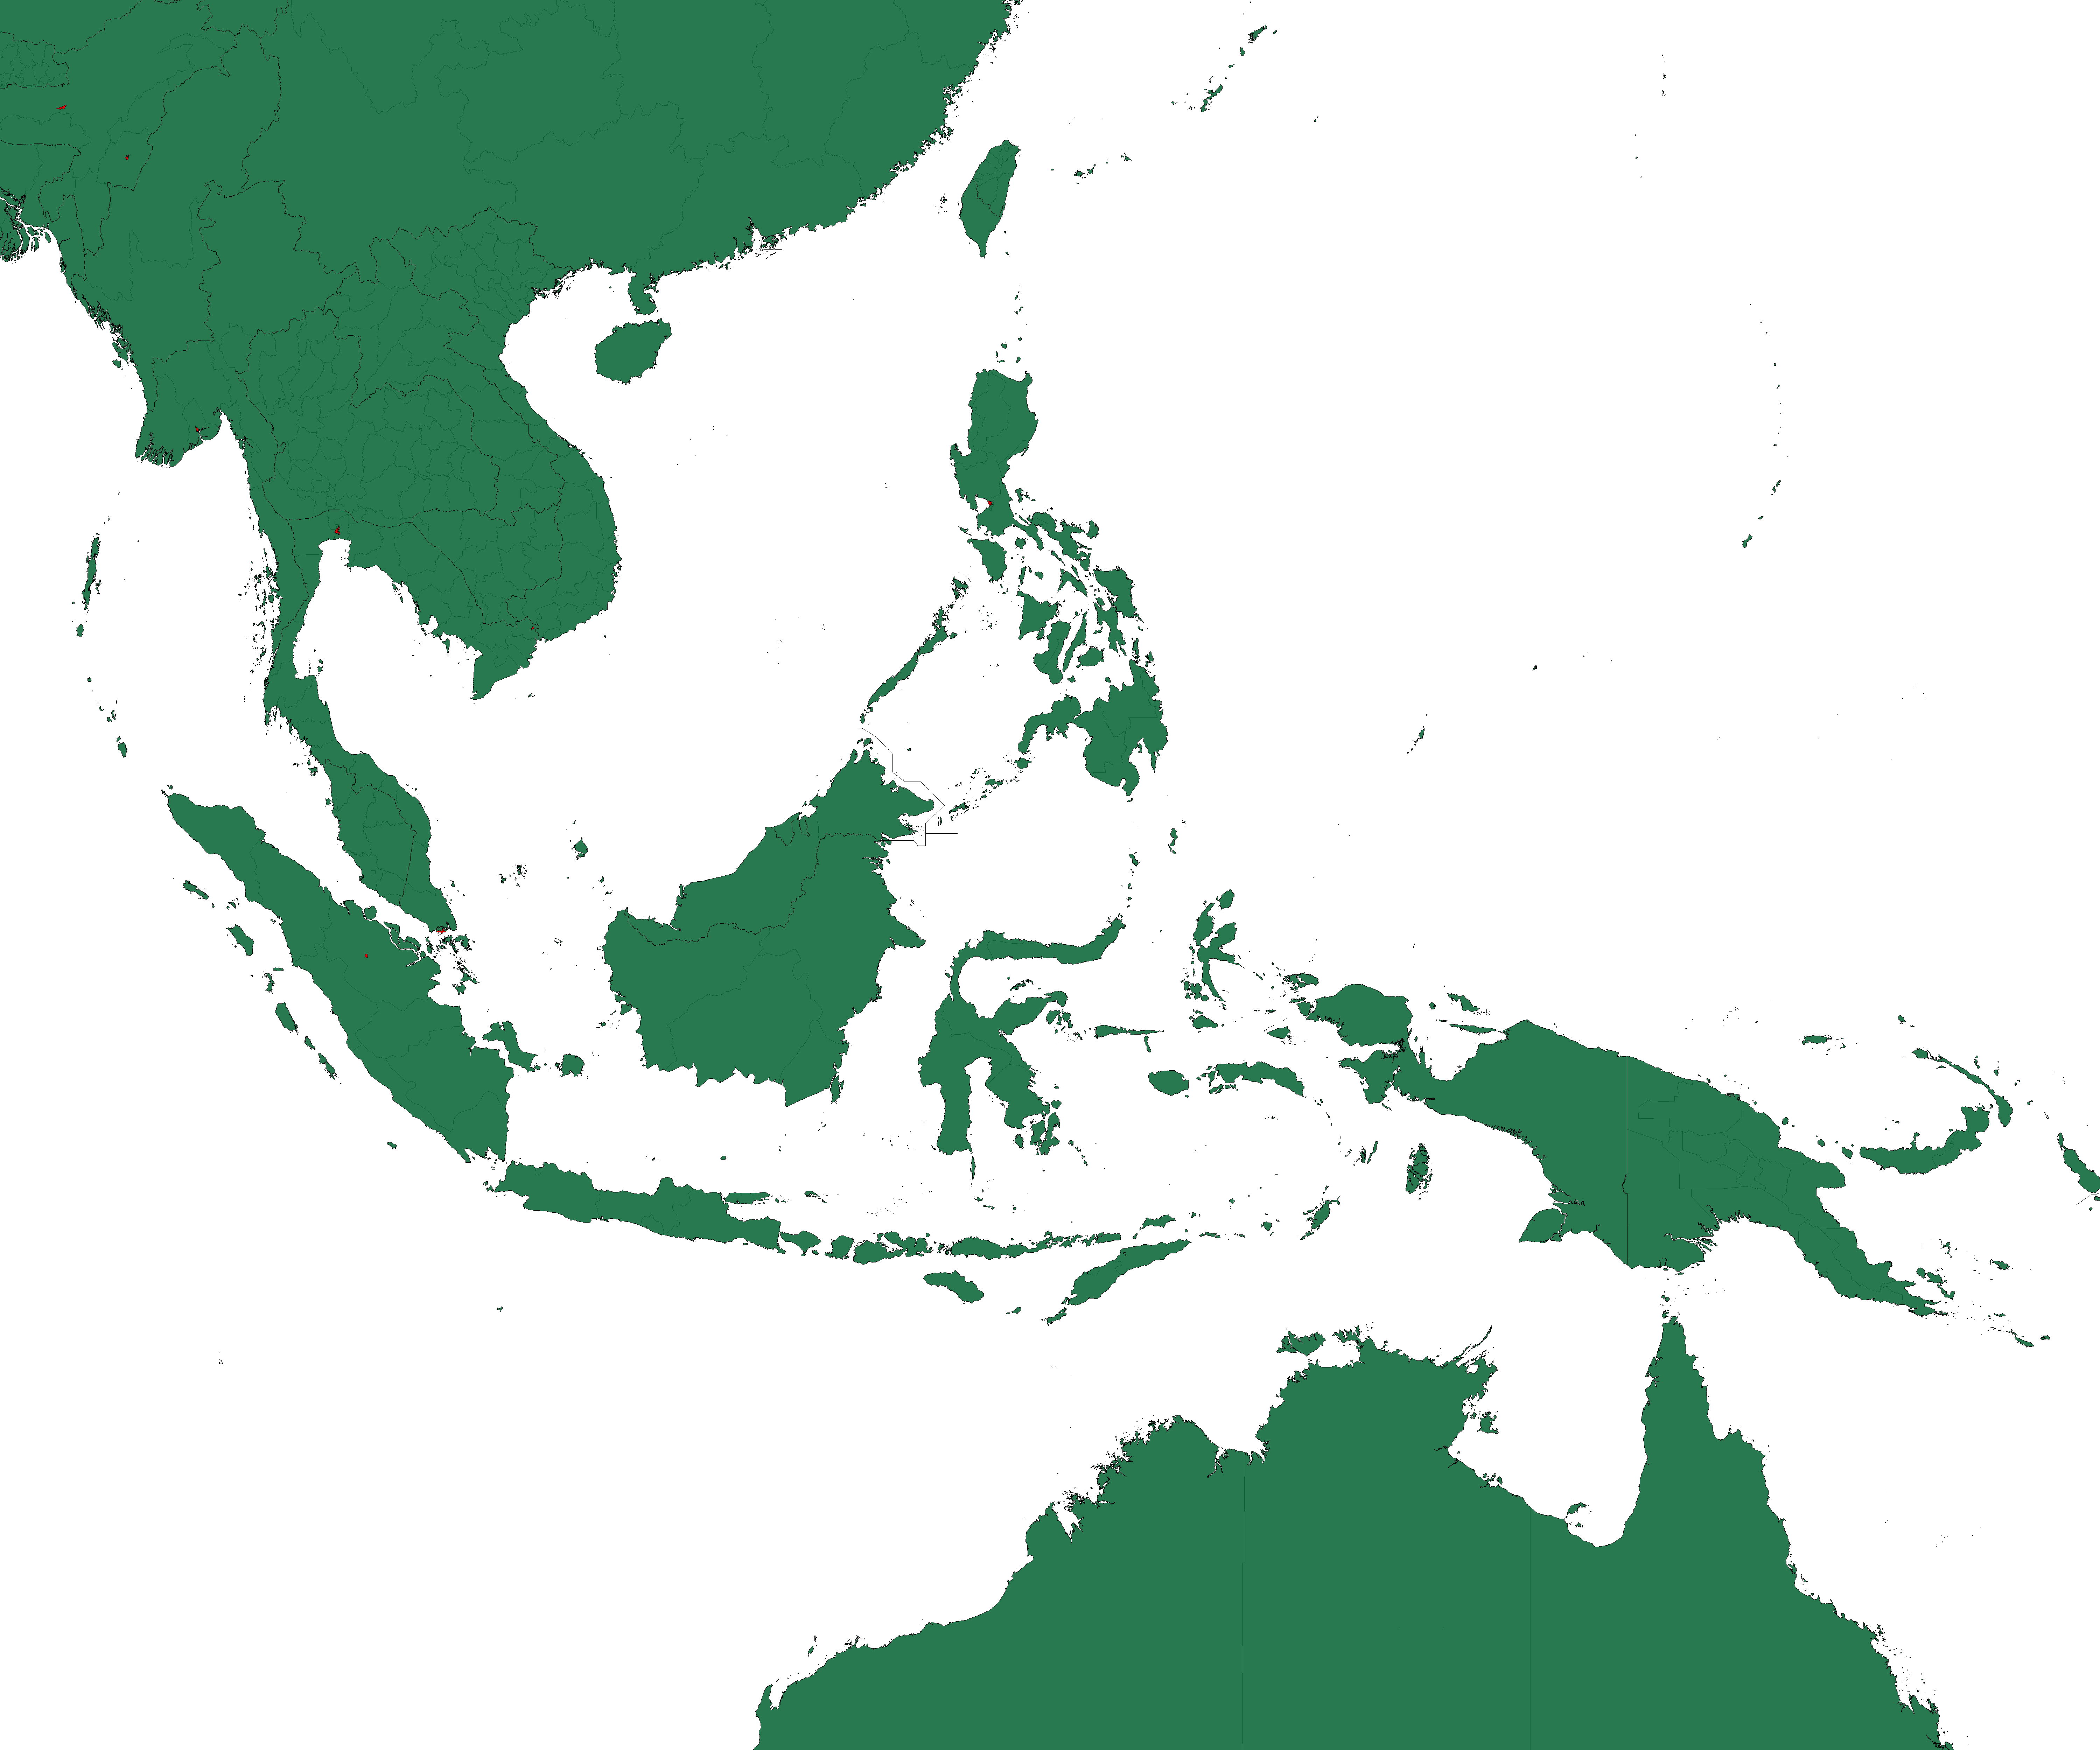 Map Of Asia Png.South East Asia Map Png 6 Png Image